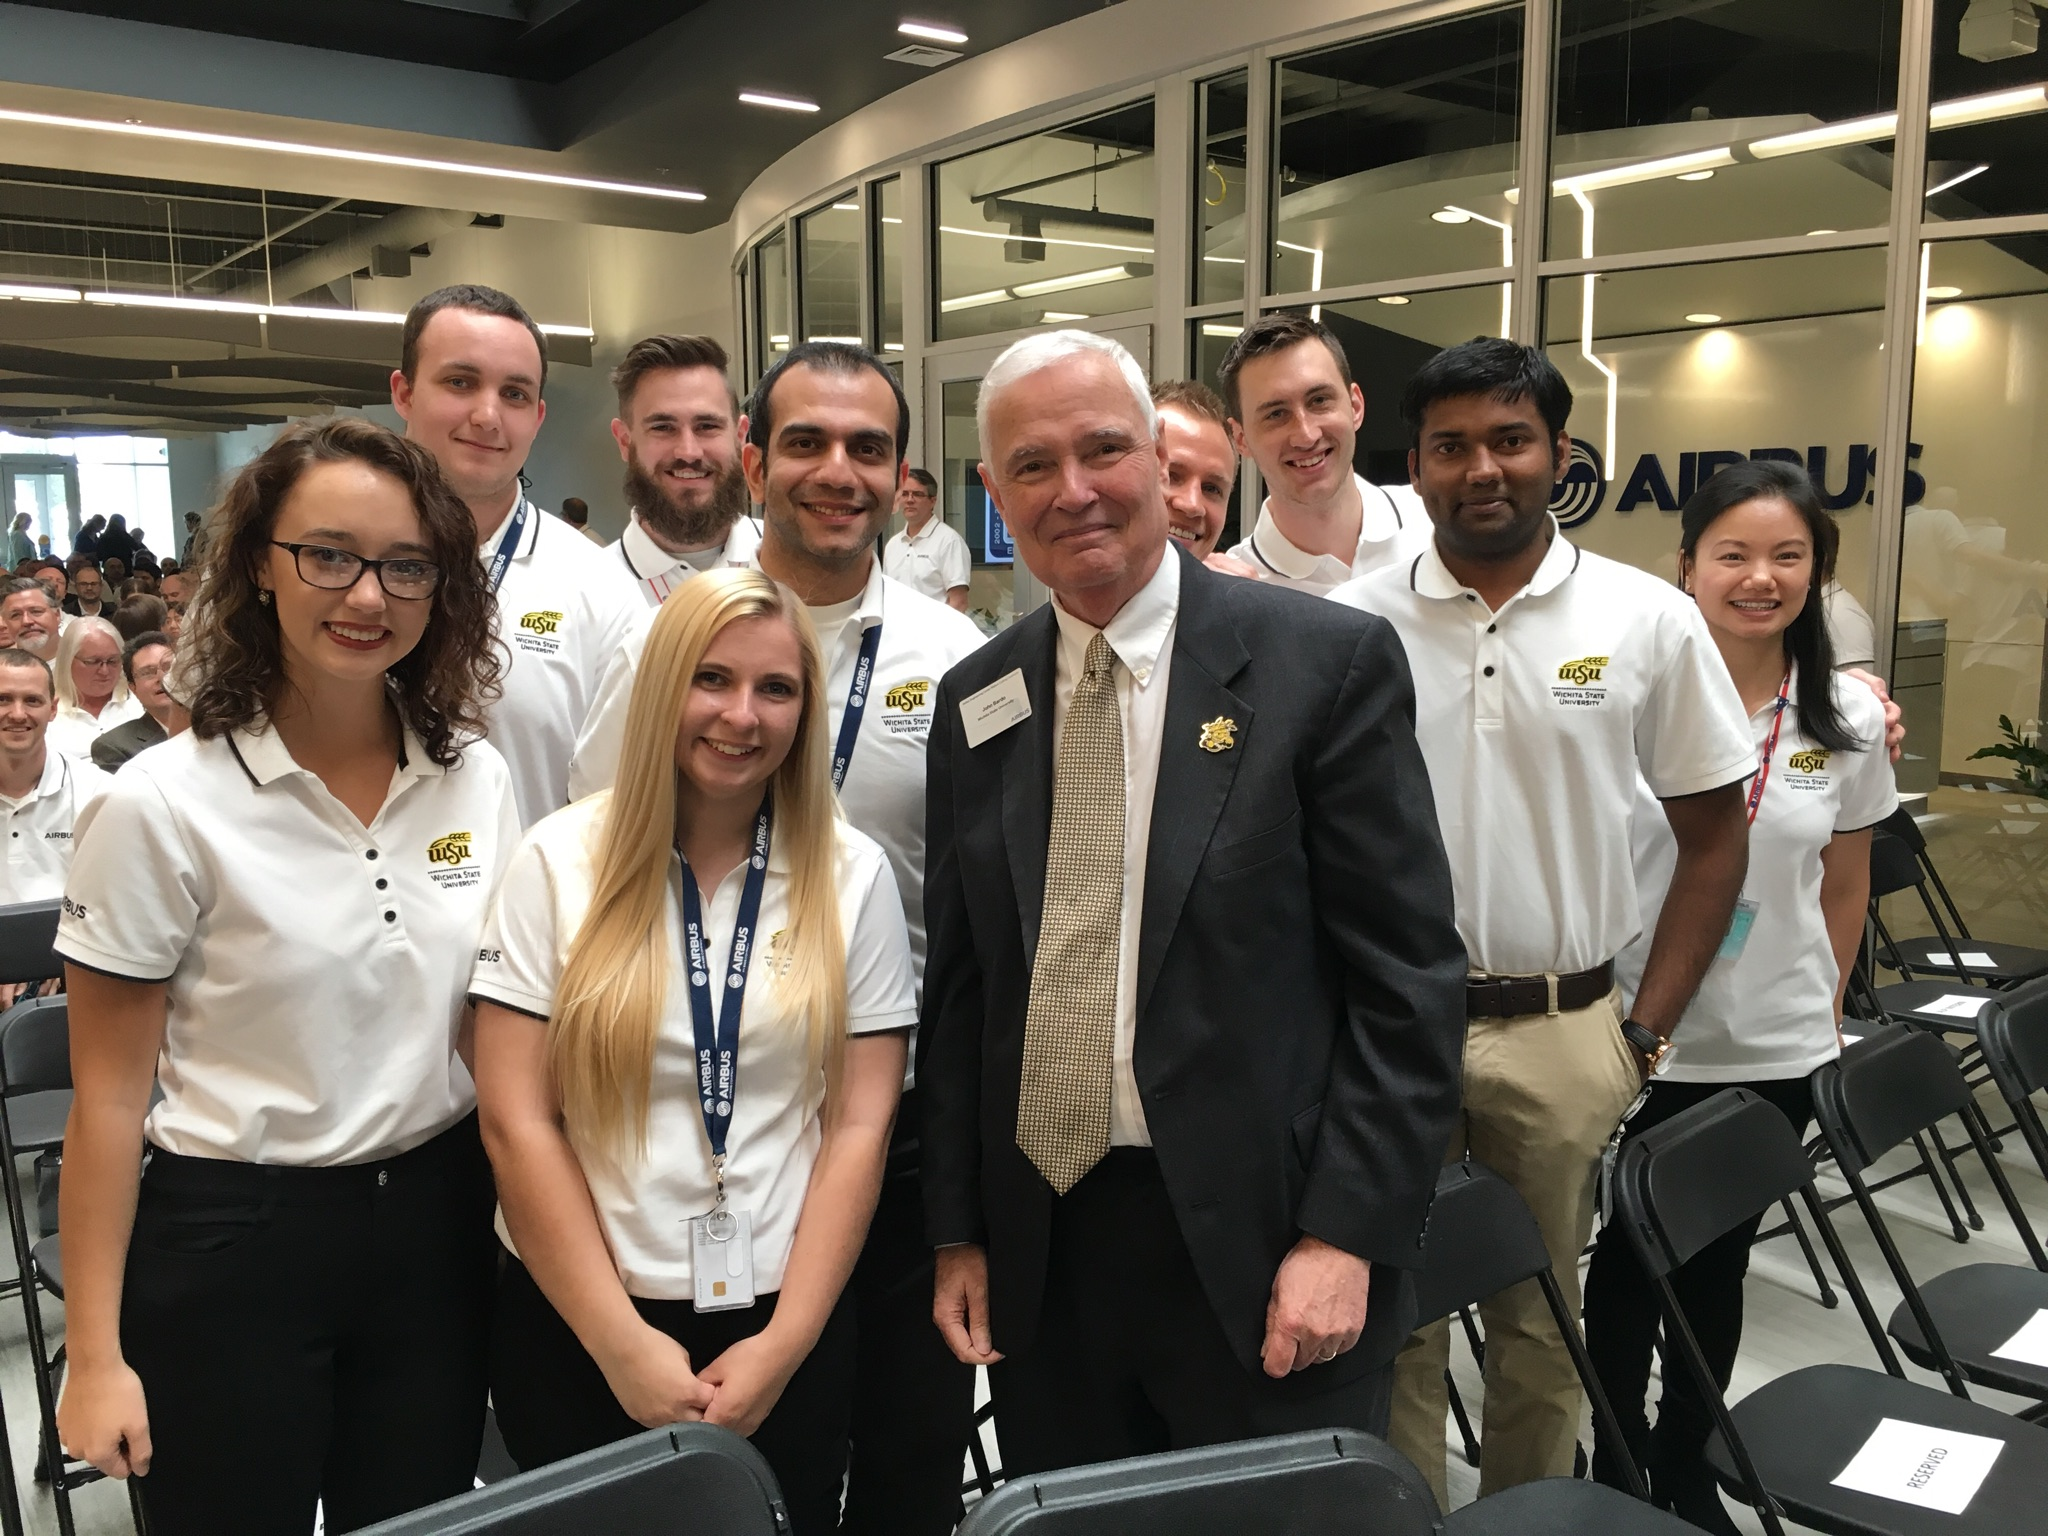 President Bardo and students